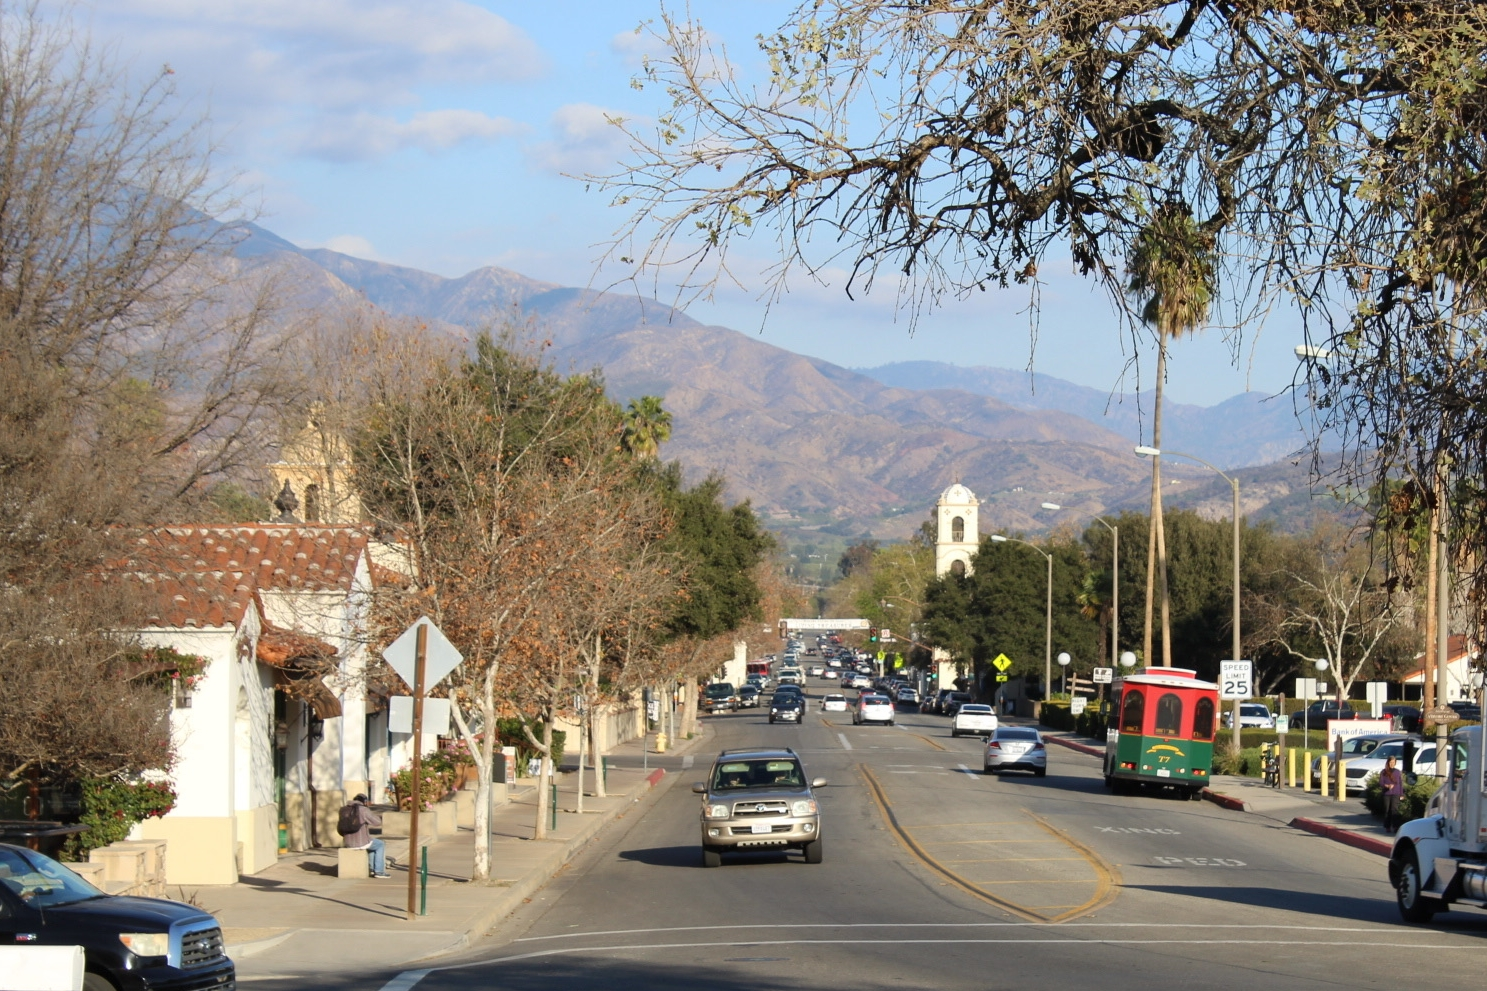 The Ojai Trolley drives along our main street Ojai Avenue